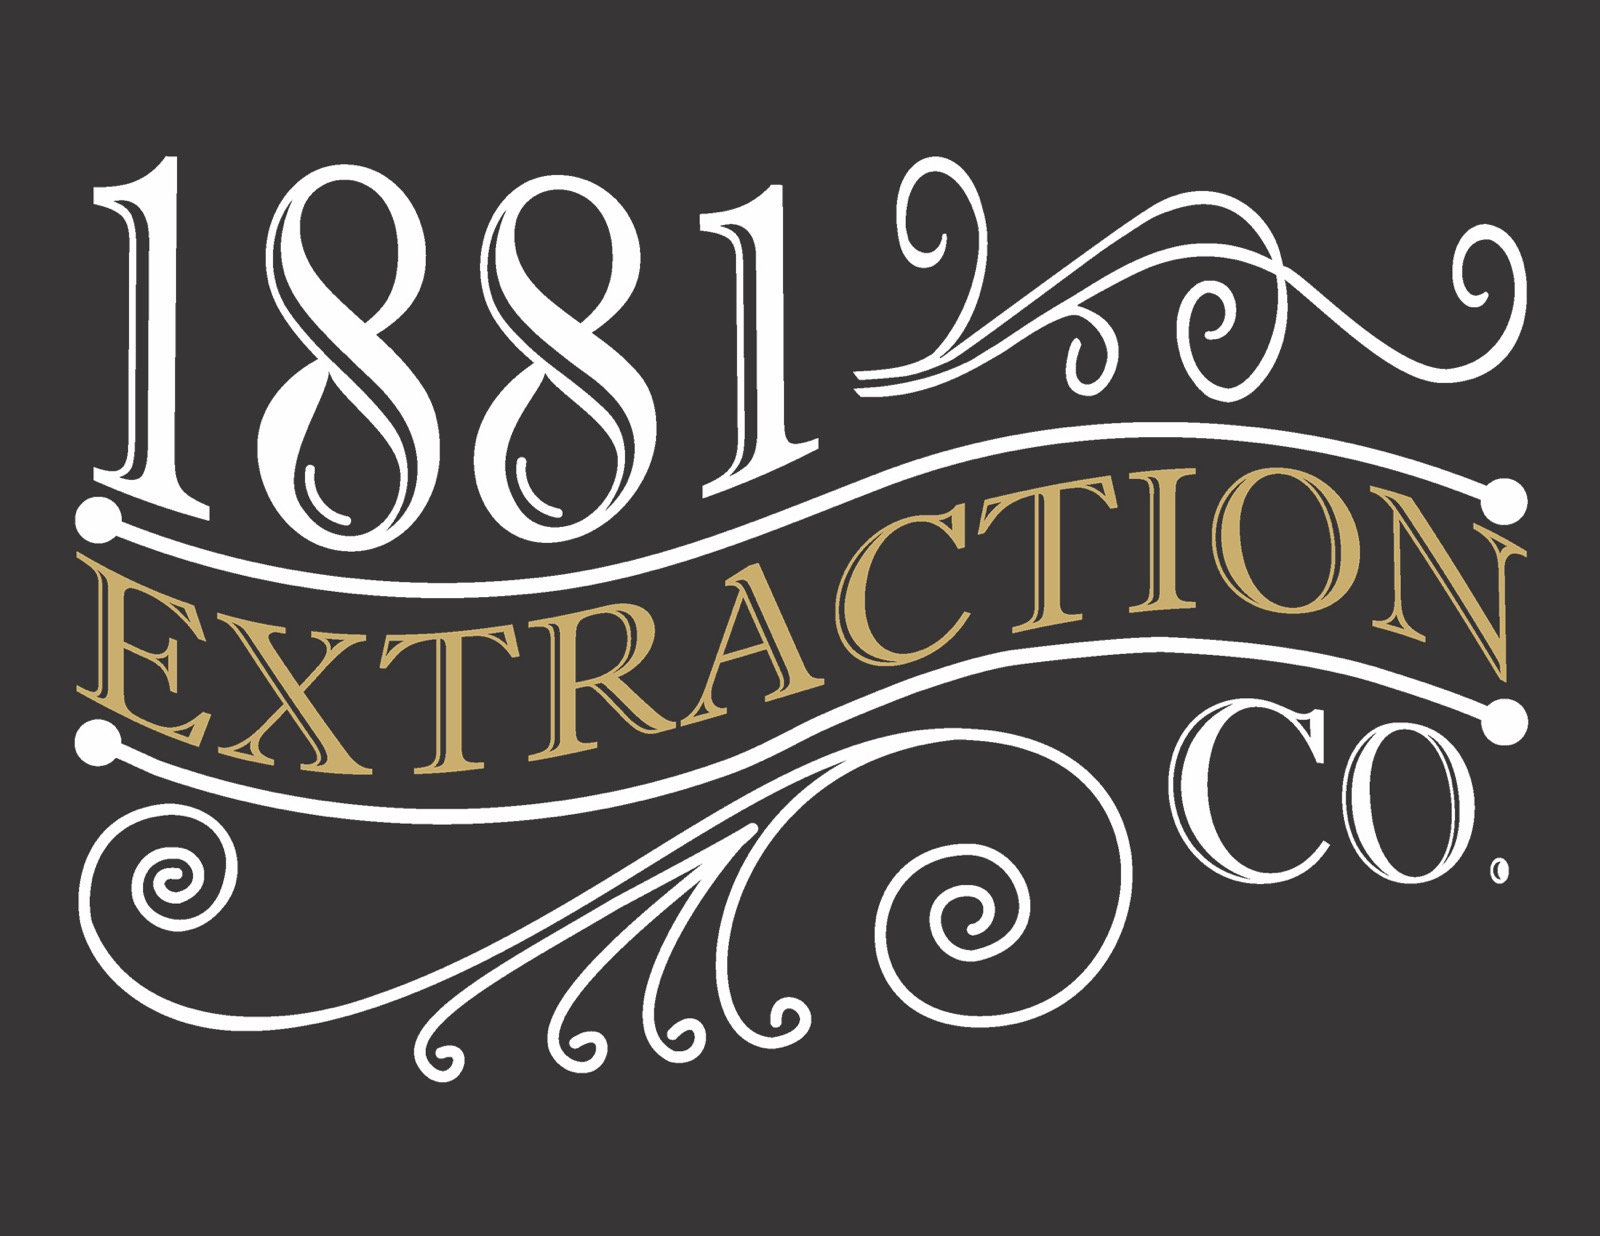 1881 EXTRACTION CO.